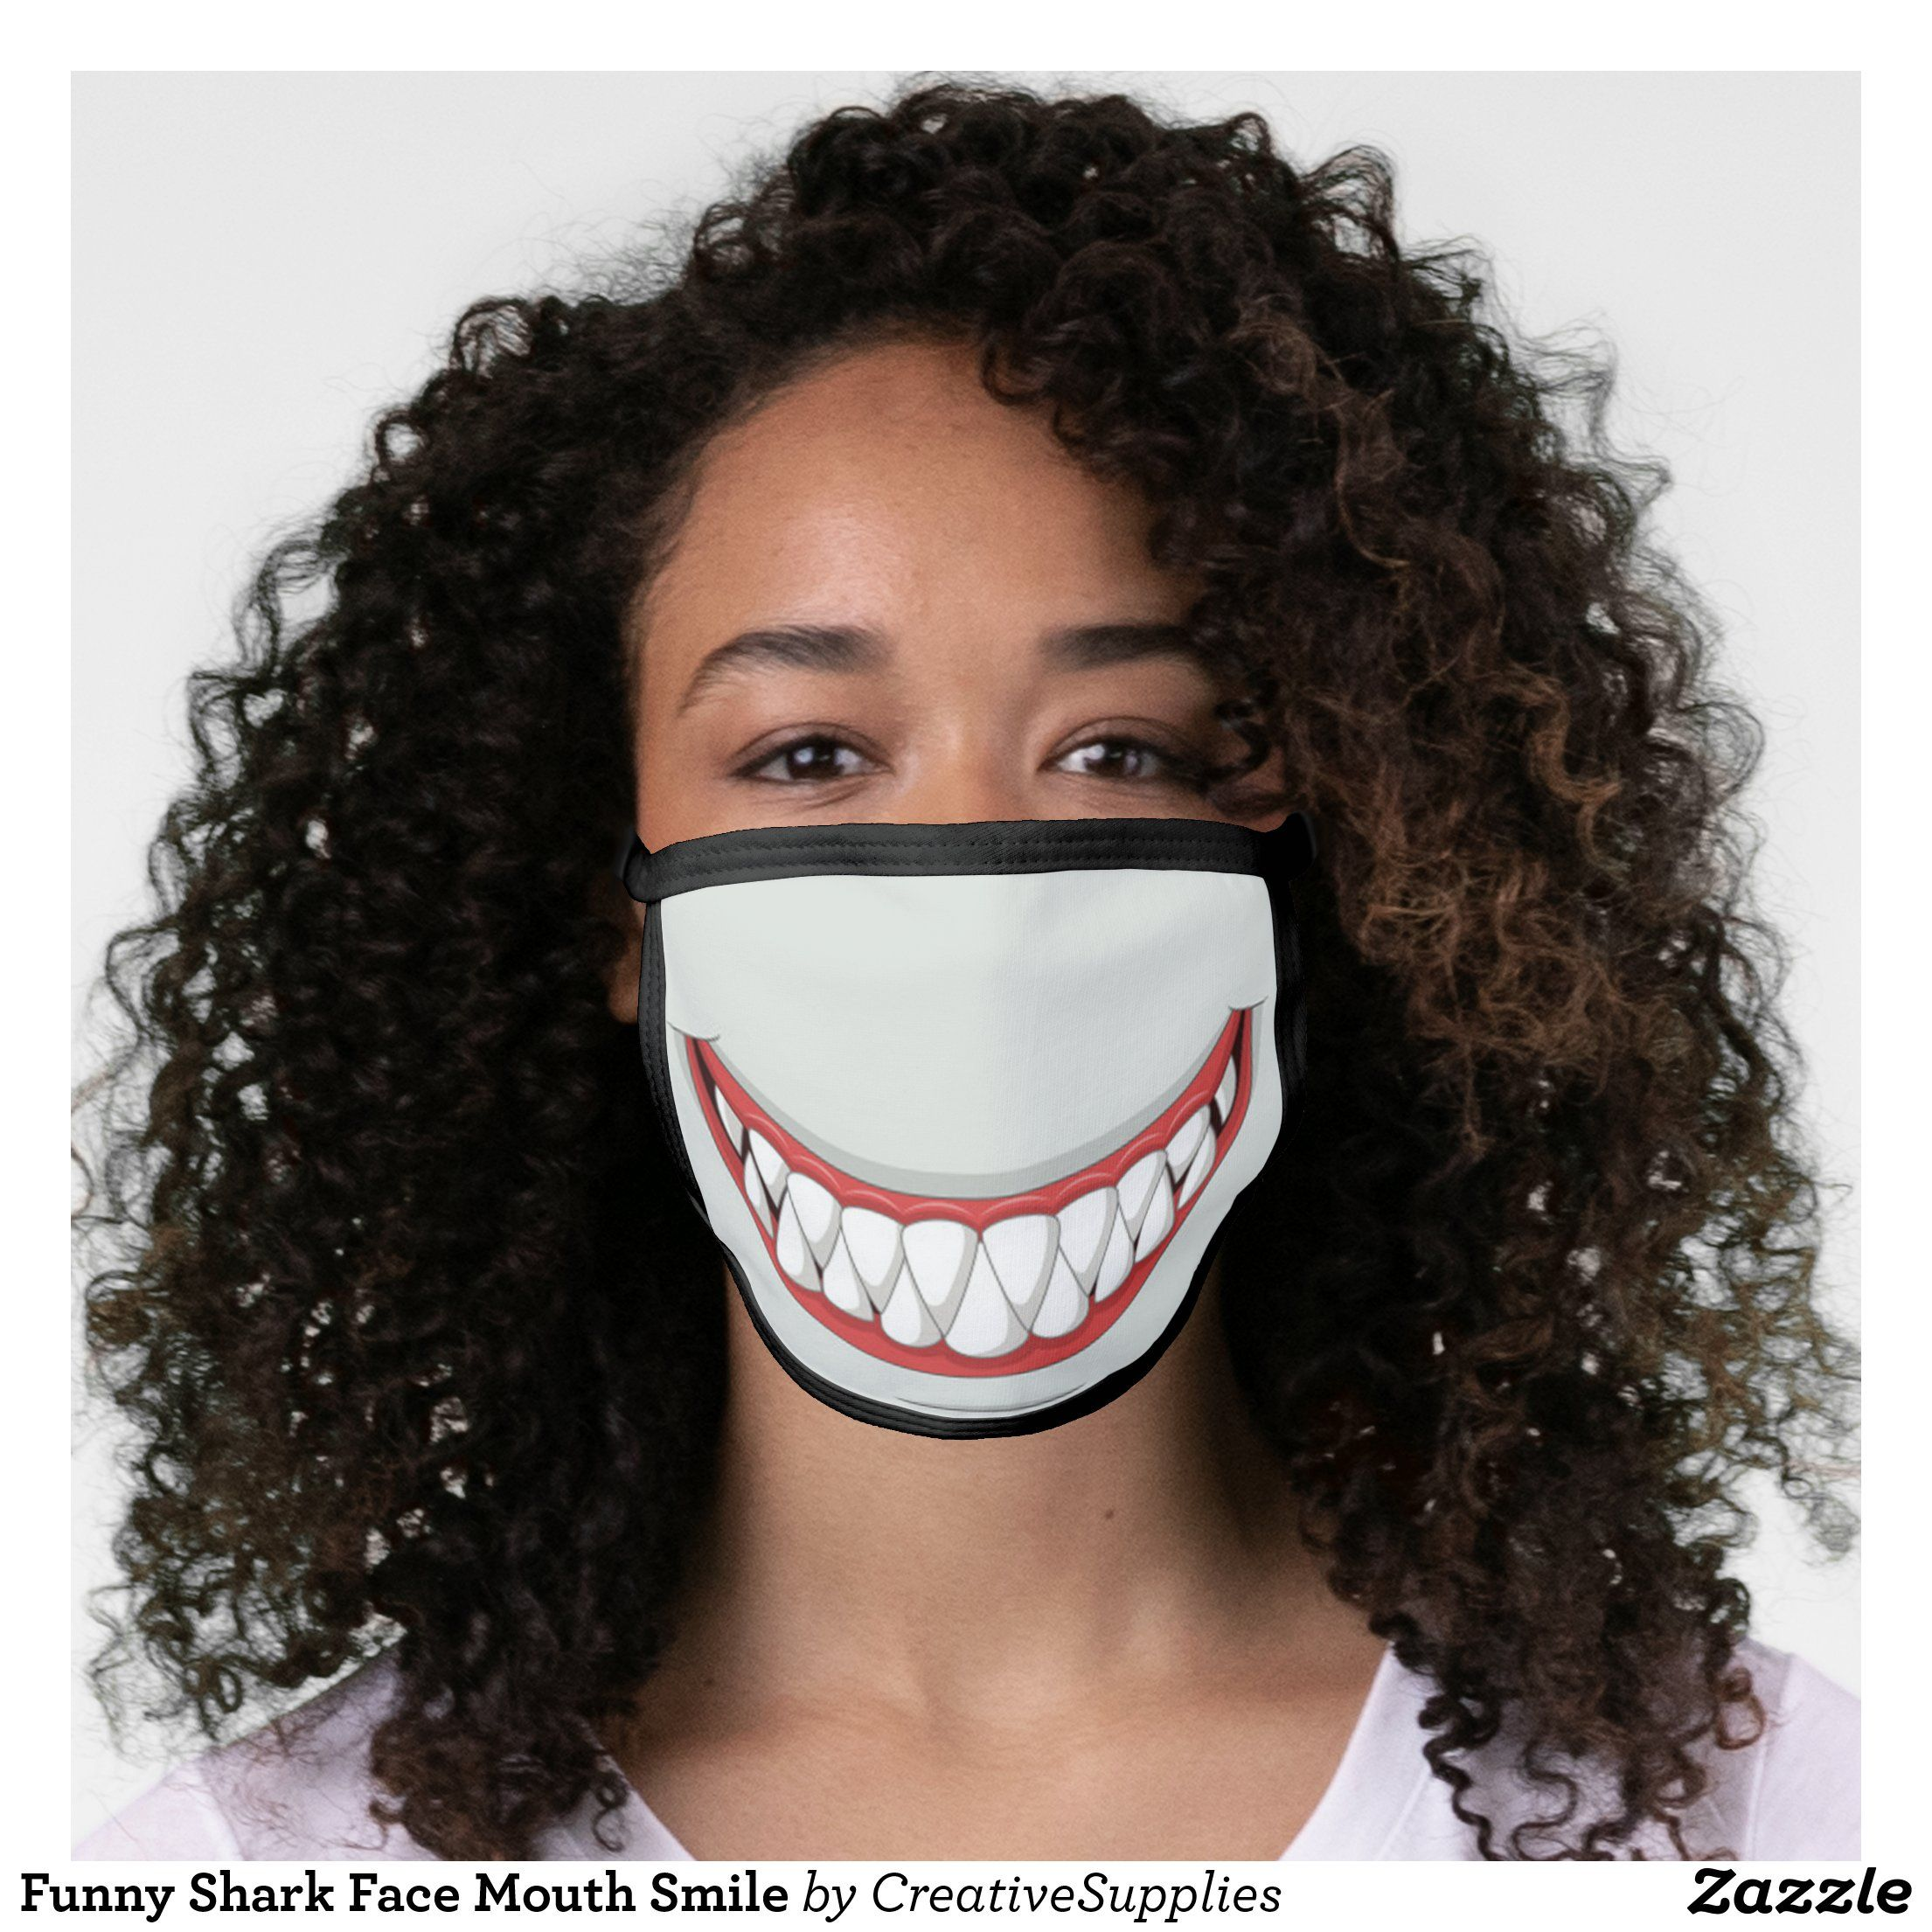 Funny Shark Face Mouth Smile Face Mask in